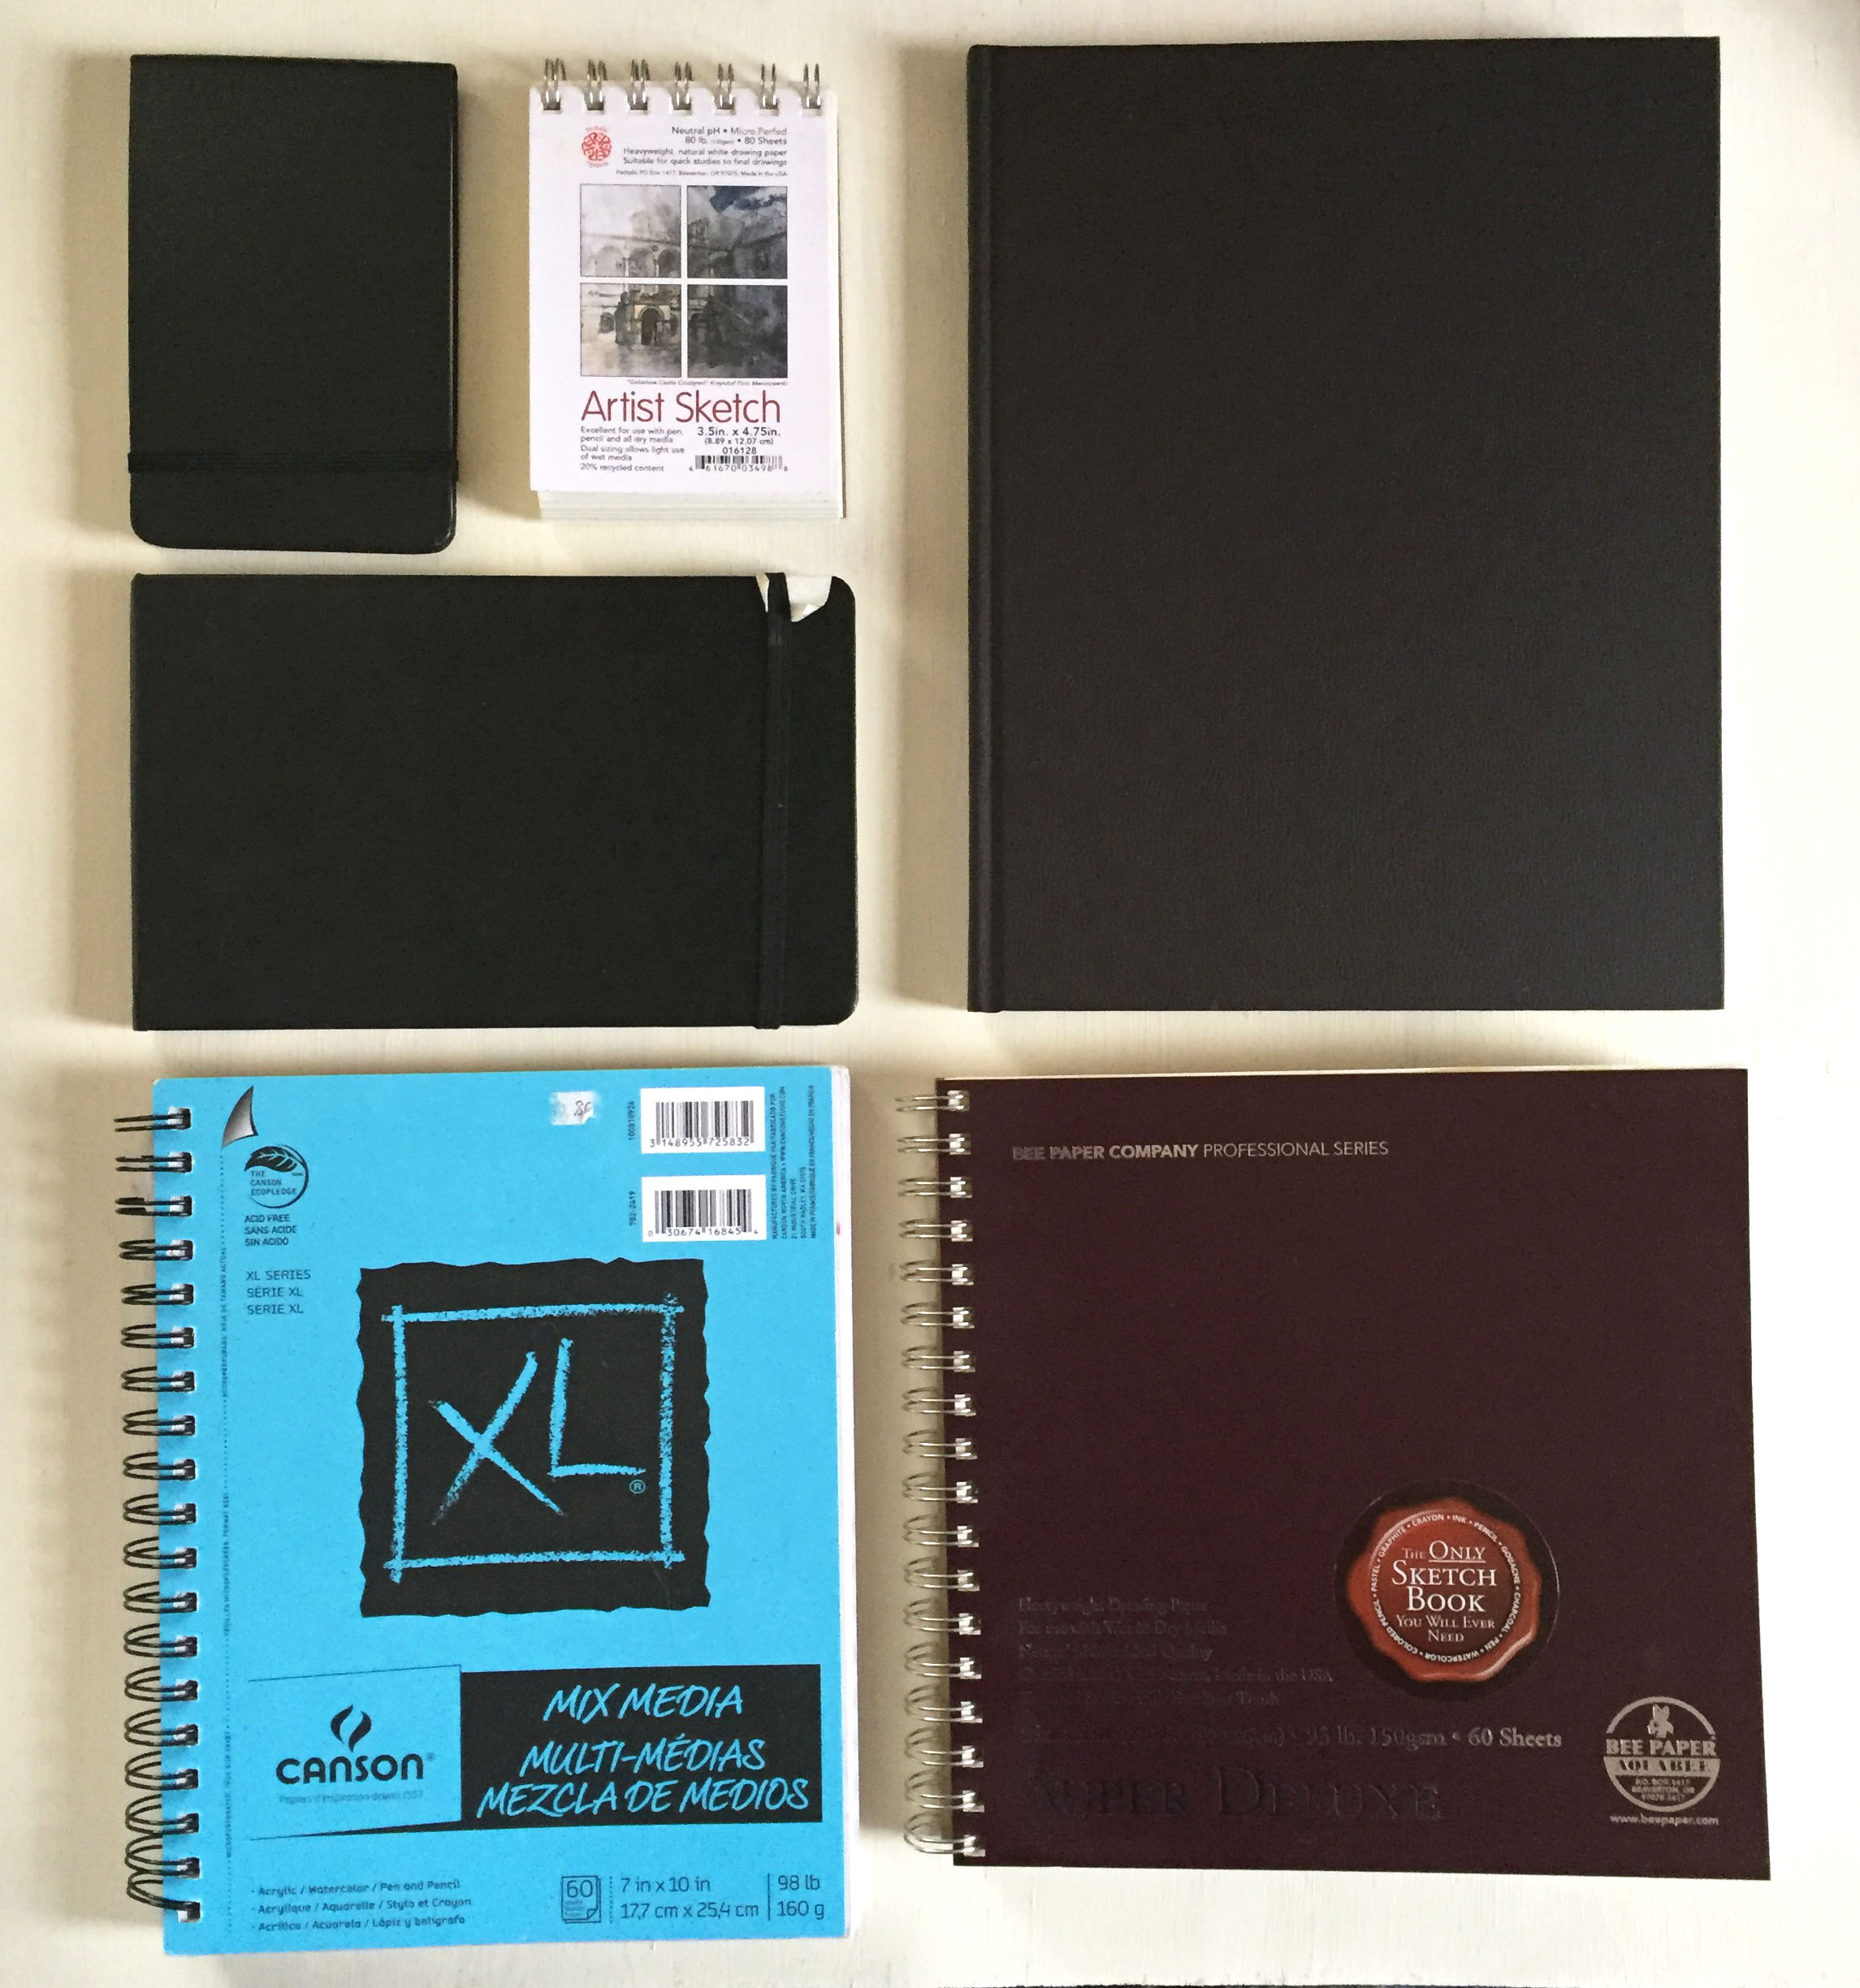 My current sketchbook collection (Clockwise from top left): Moleskine Watercolor Notebooks (black rectangular), Pentalic Pocket Sketchpad, Strathmore 500 Series Mixed Media Art Journal, Bee Paper Aquabee Super Deluxe Sketchbook, Canson XL Mixed Media Pad